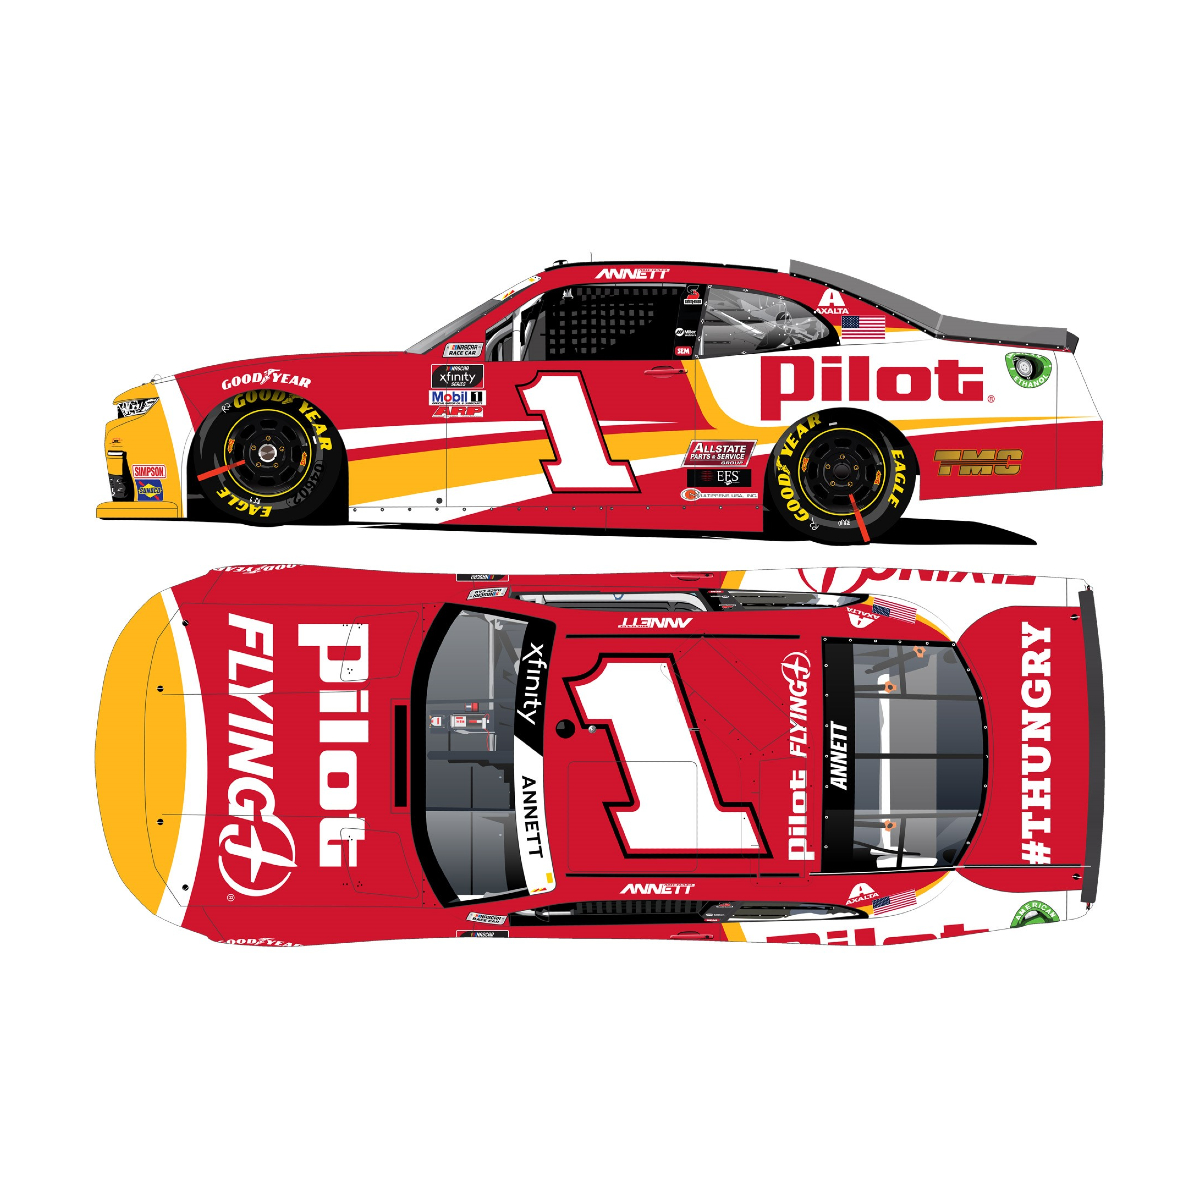 Michael Annett No. 1 Pilot / Flying J 2021 Autographed: 1:24 Die Cast